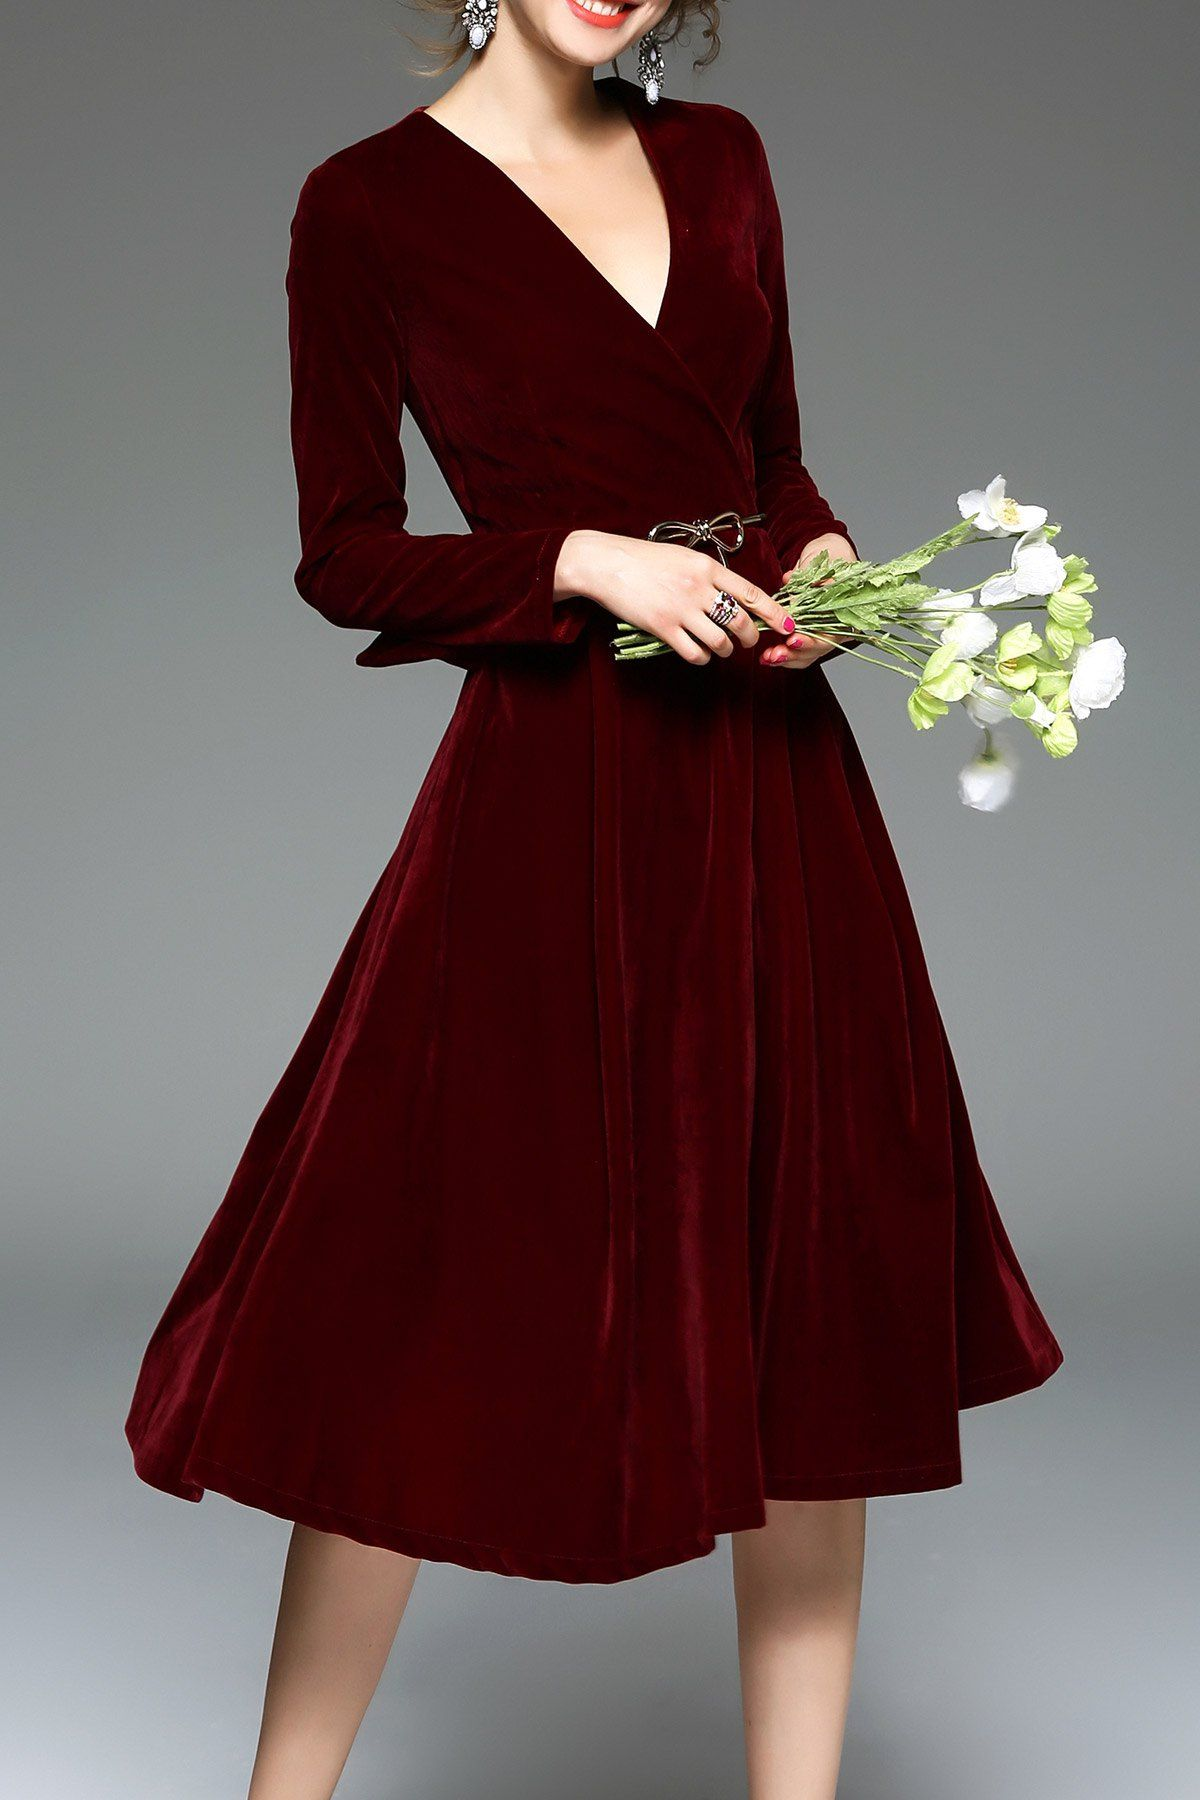 Blueoxy burgundy long sleeve velvet midi dress midi dresses at